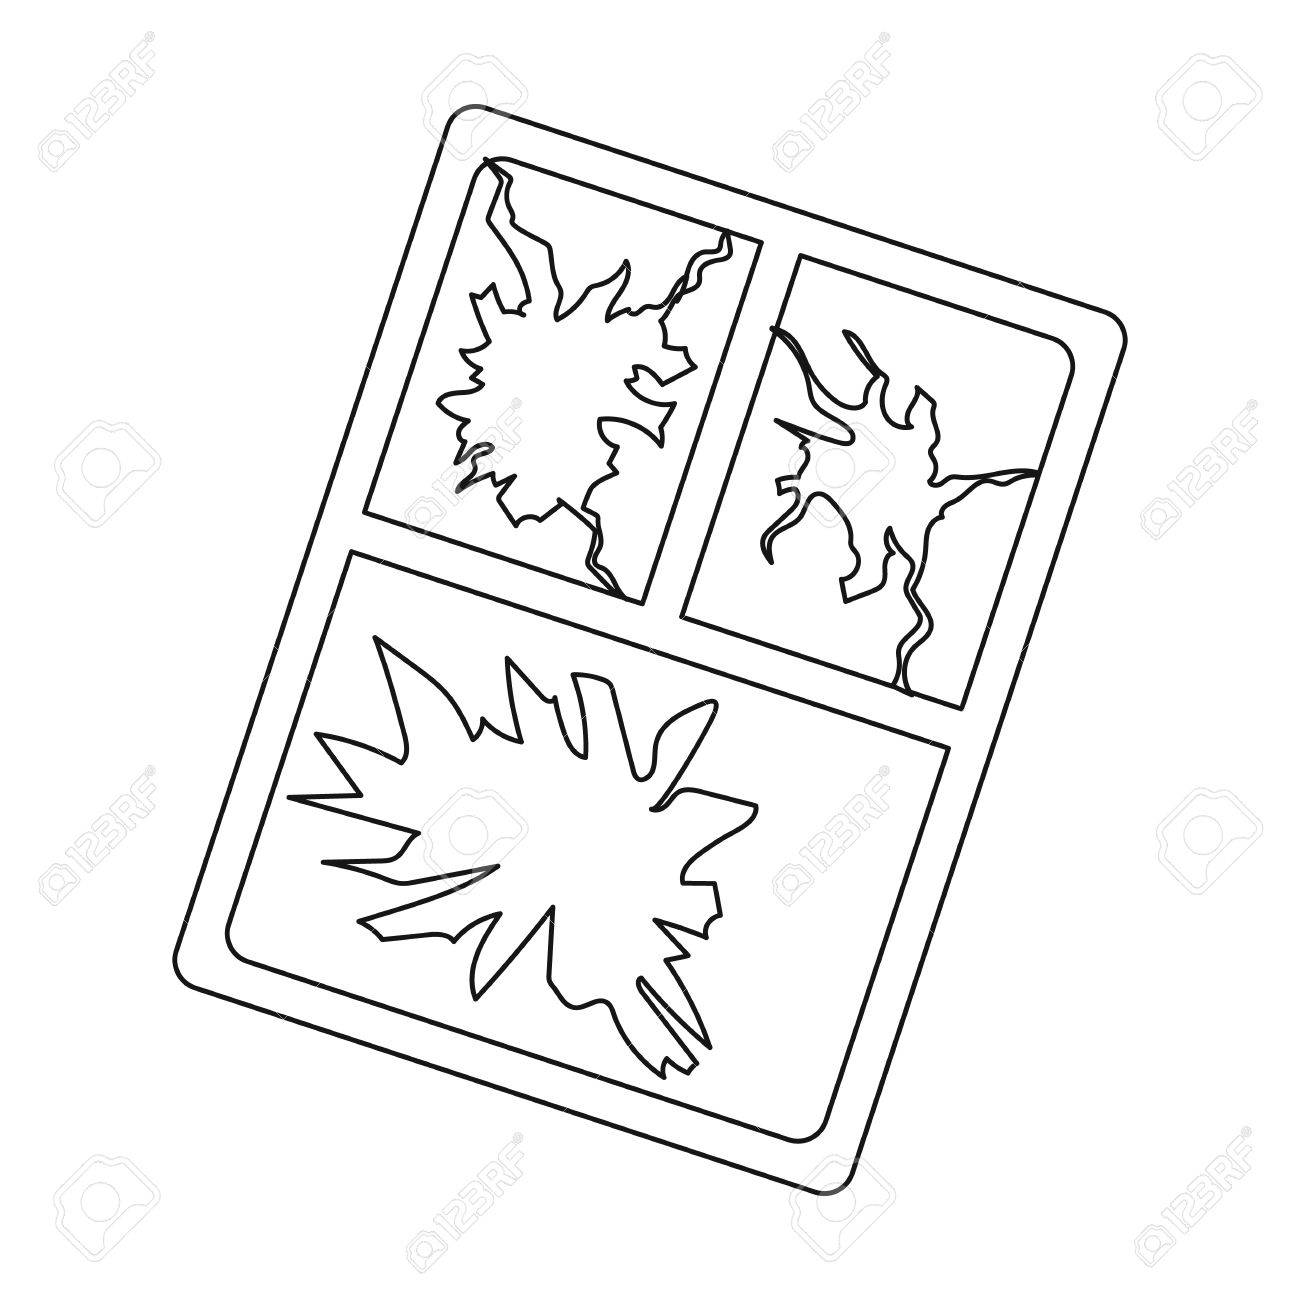 Broken window drawing at getdrawings free for personal use 1300x1300 broken window icon in outline style isolated on white background thecheapjerseys Images